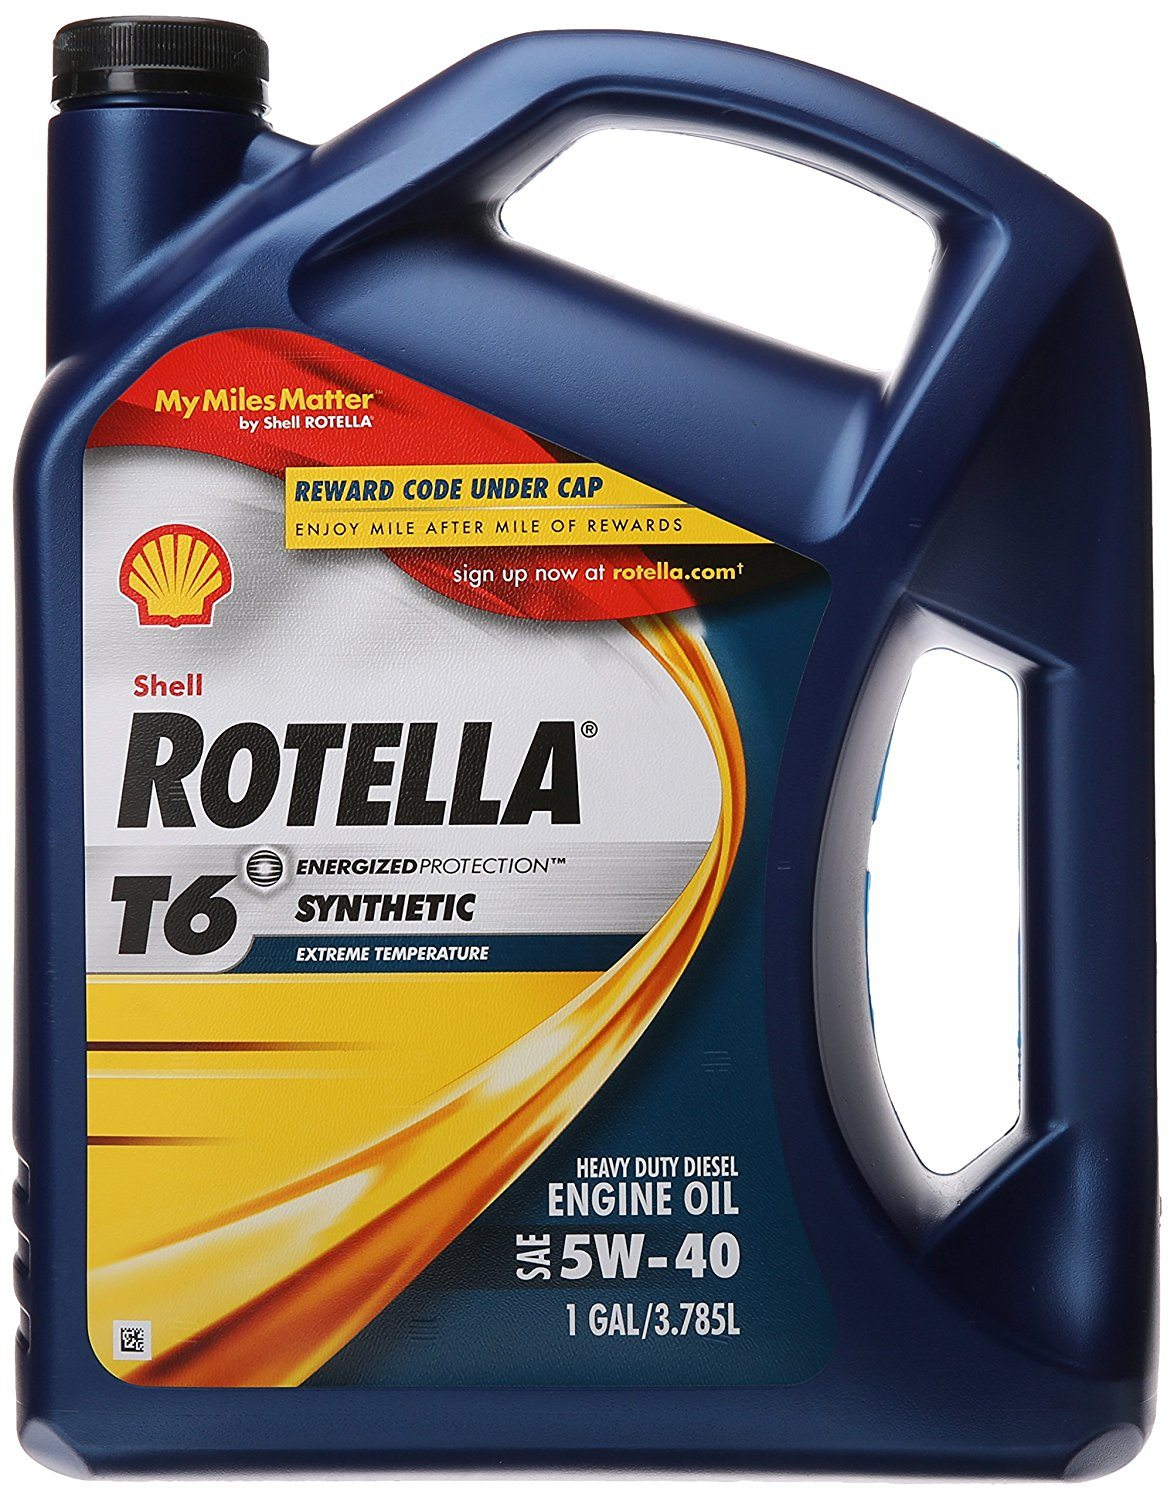 5 Best Synthetic Motor Oil for Performance and Everyday